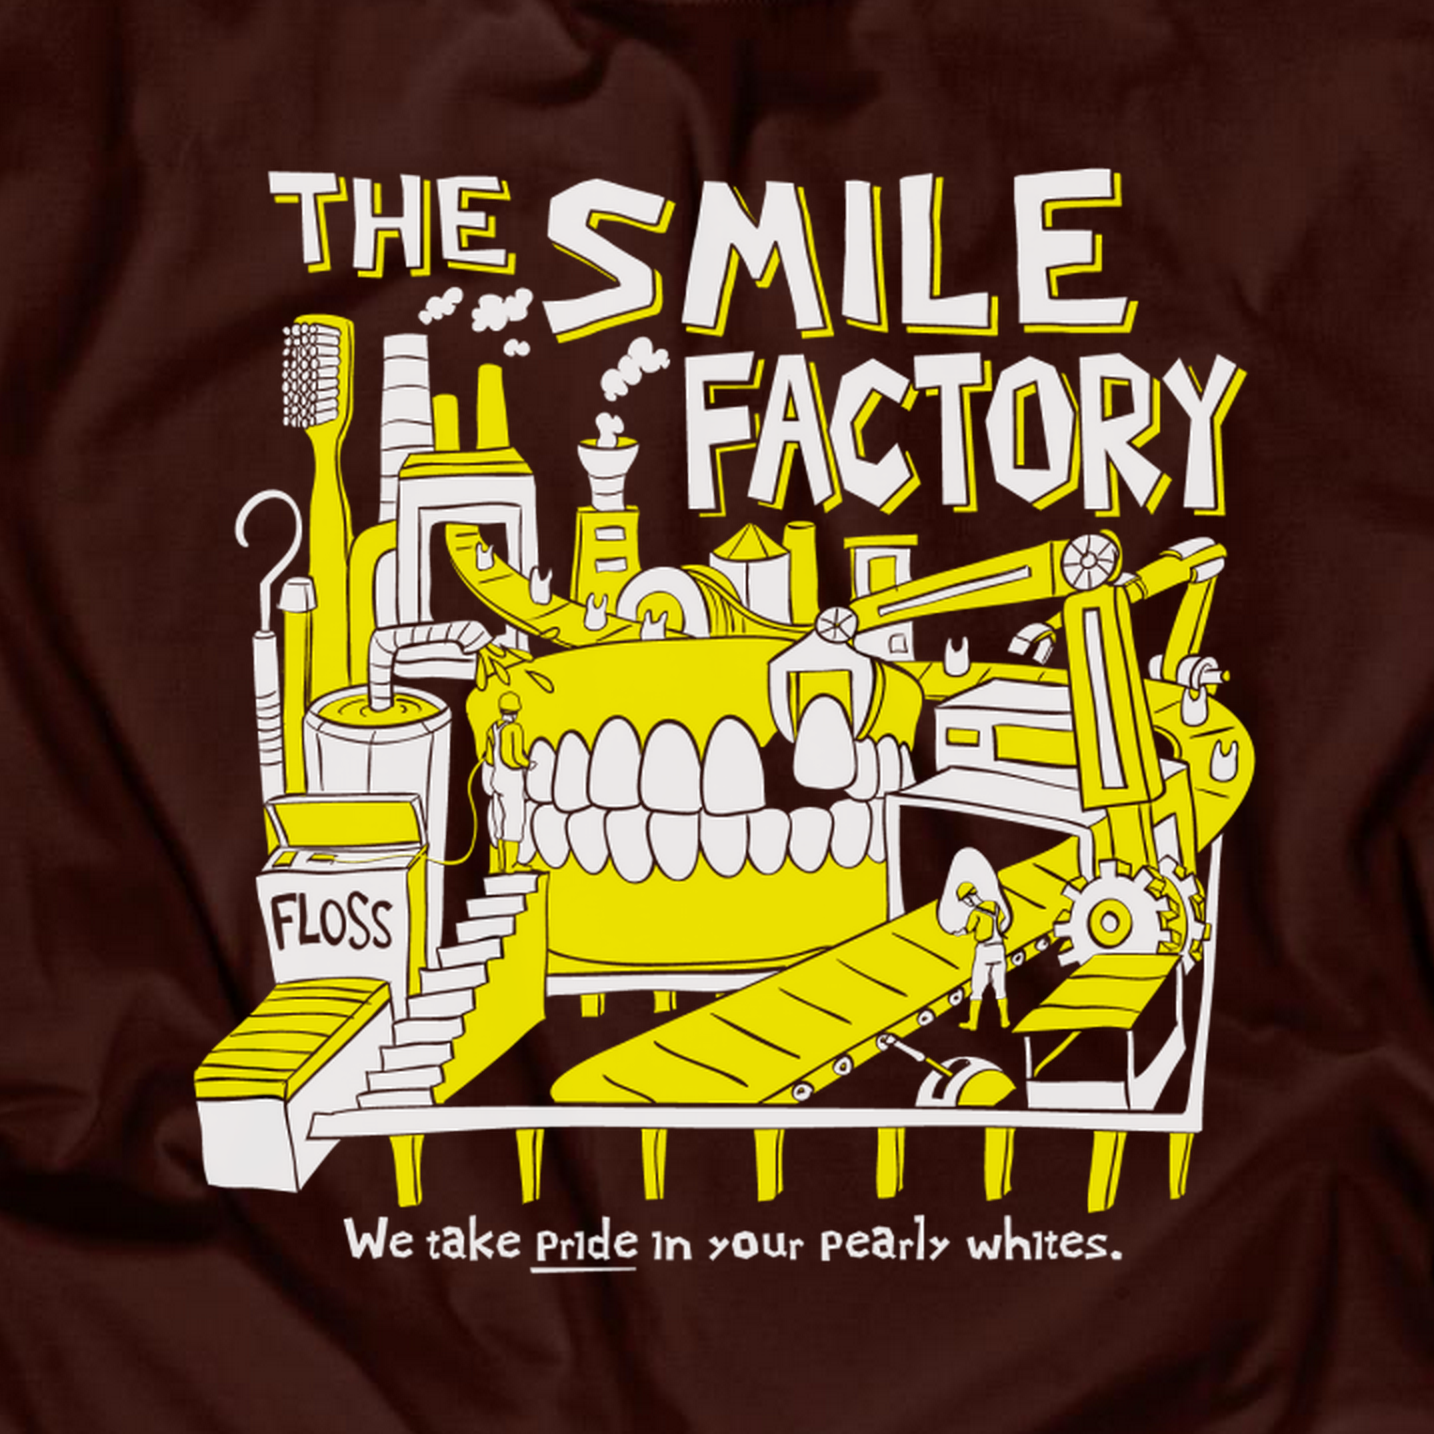 The Smile Factory - Shirts | D...